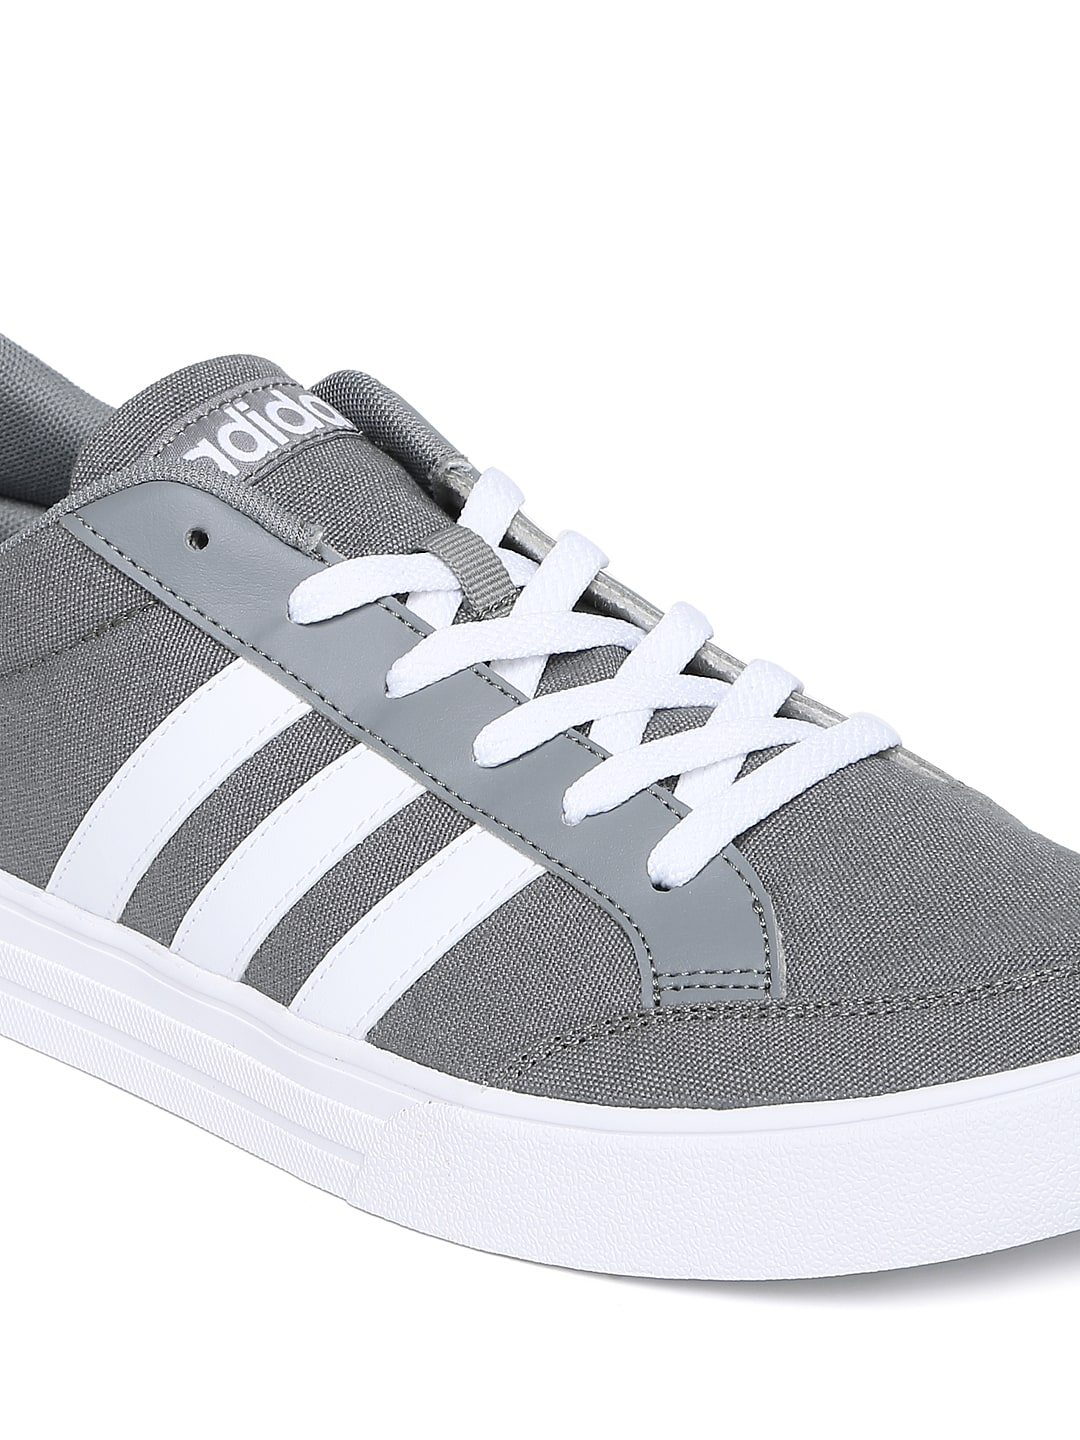 on sale 0ea85 9e603 11485941259528 adidas neo men grey solid regular sneakers 9781485941259426  5 adidas neo skate ...